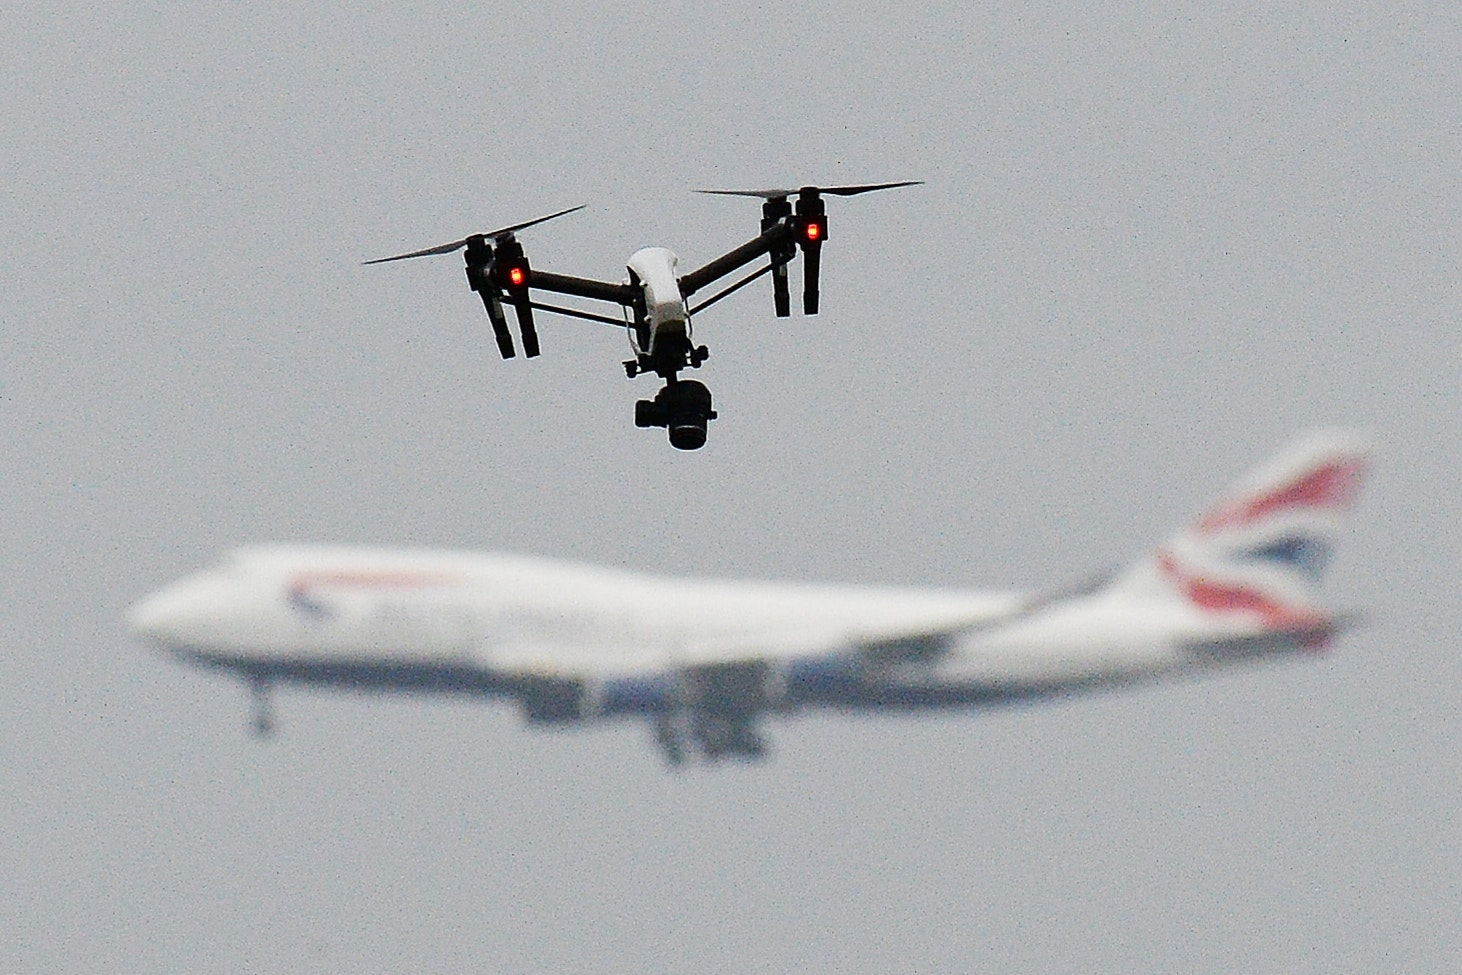 Sussex Police said there have been 67 sightings of drone activity at Gatwick Airport